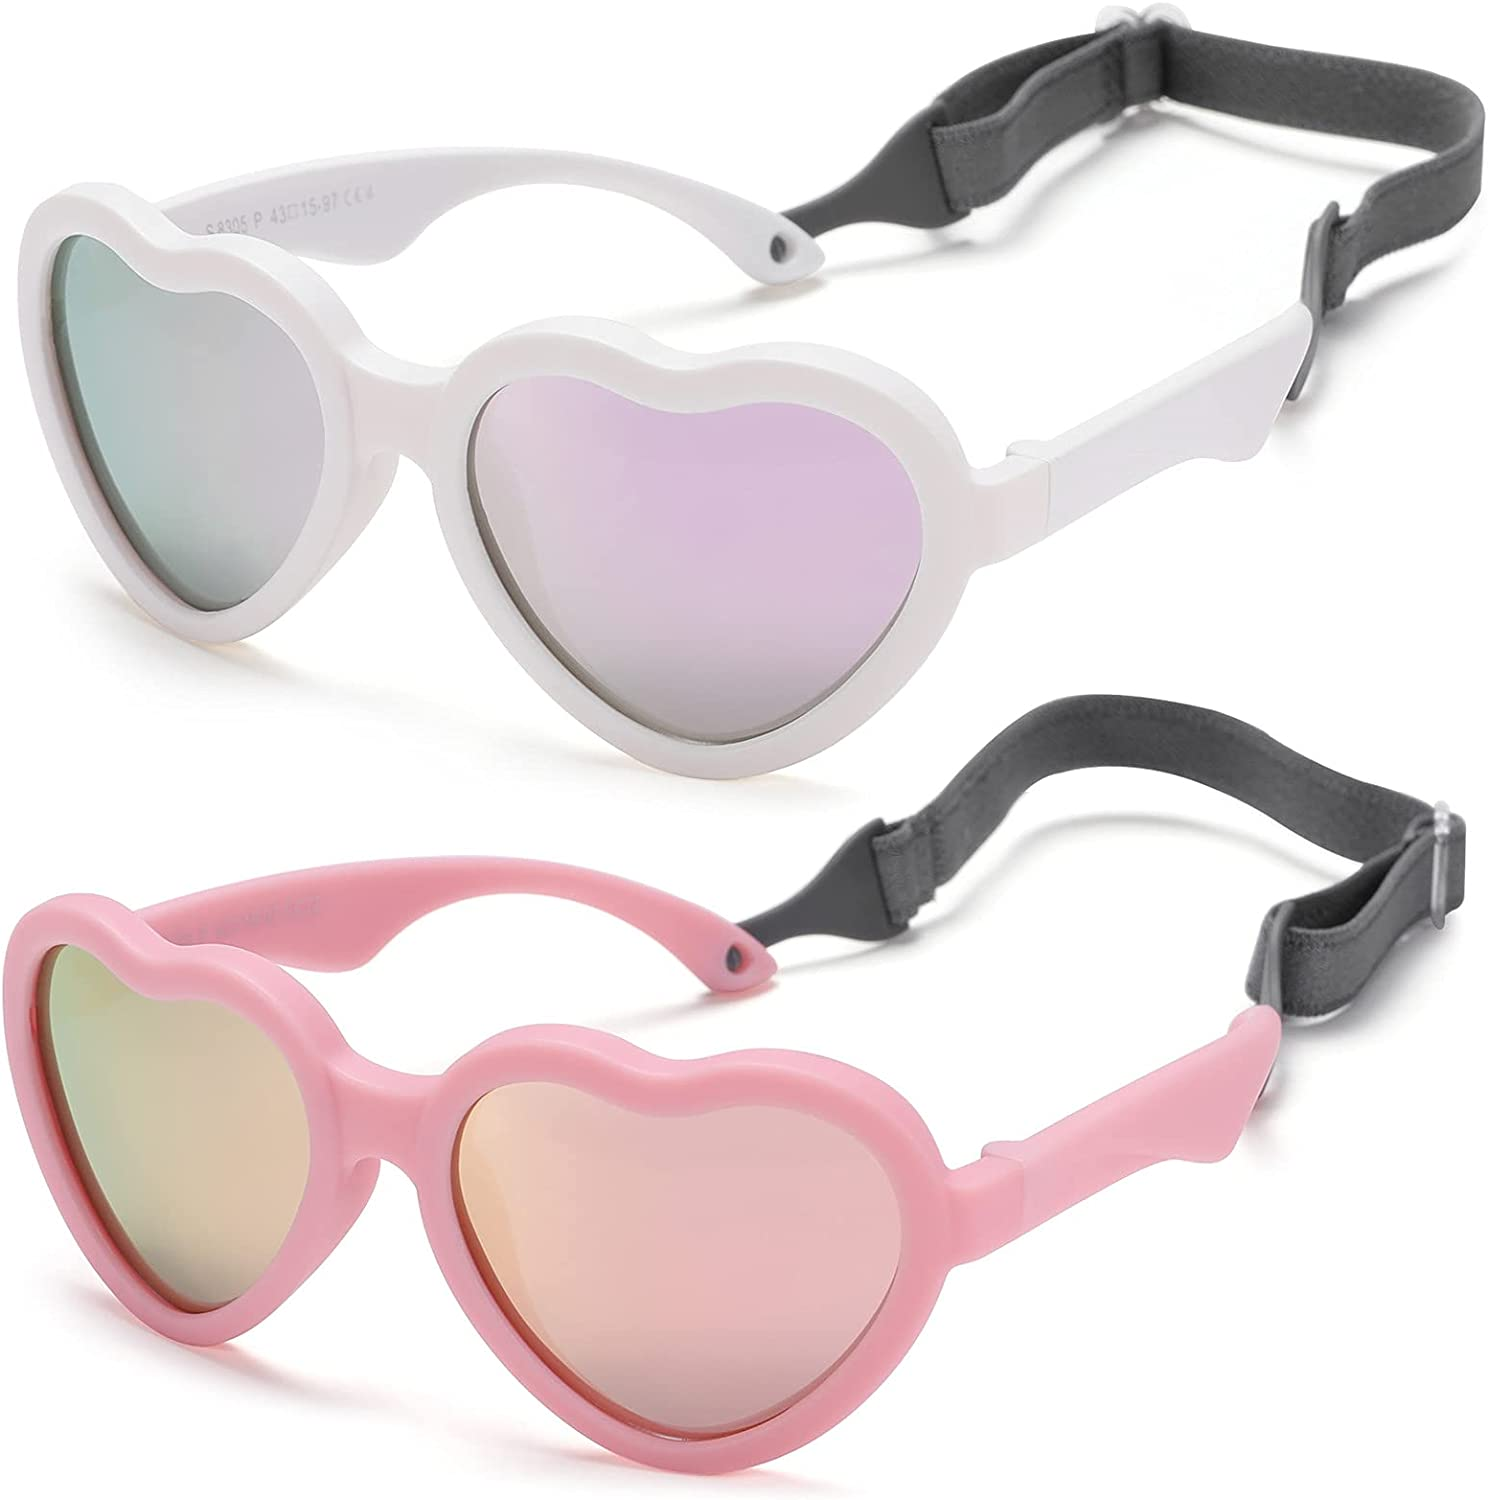 Flexible Heart Shaped Baby Polarized Sunglasses with Strap Adjustable Toddler...